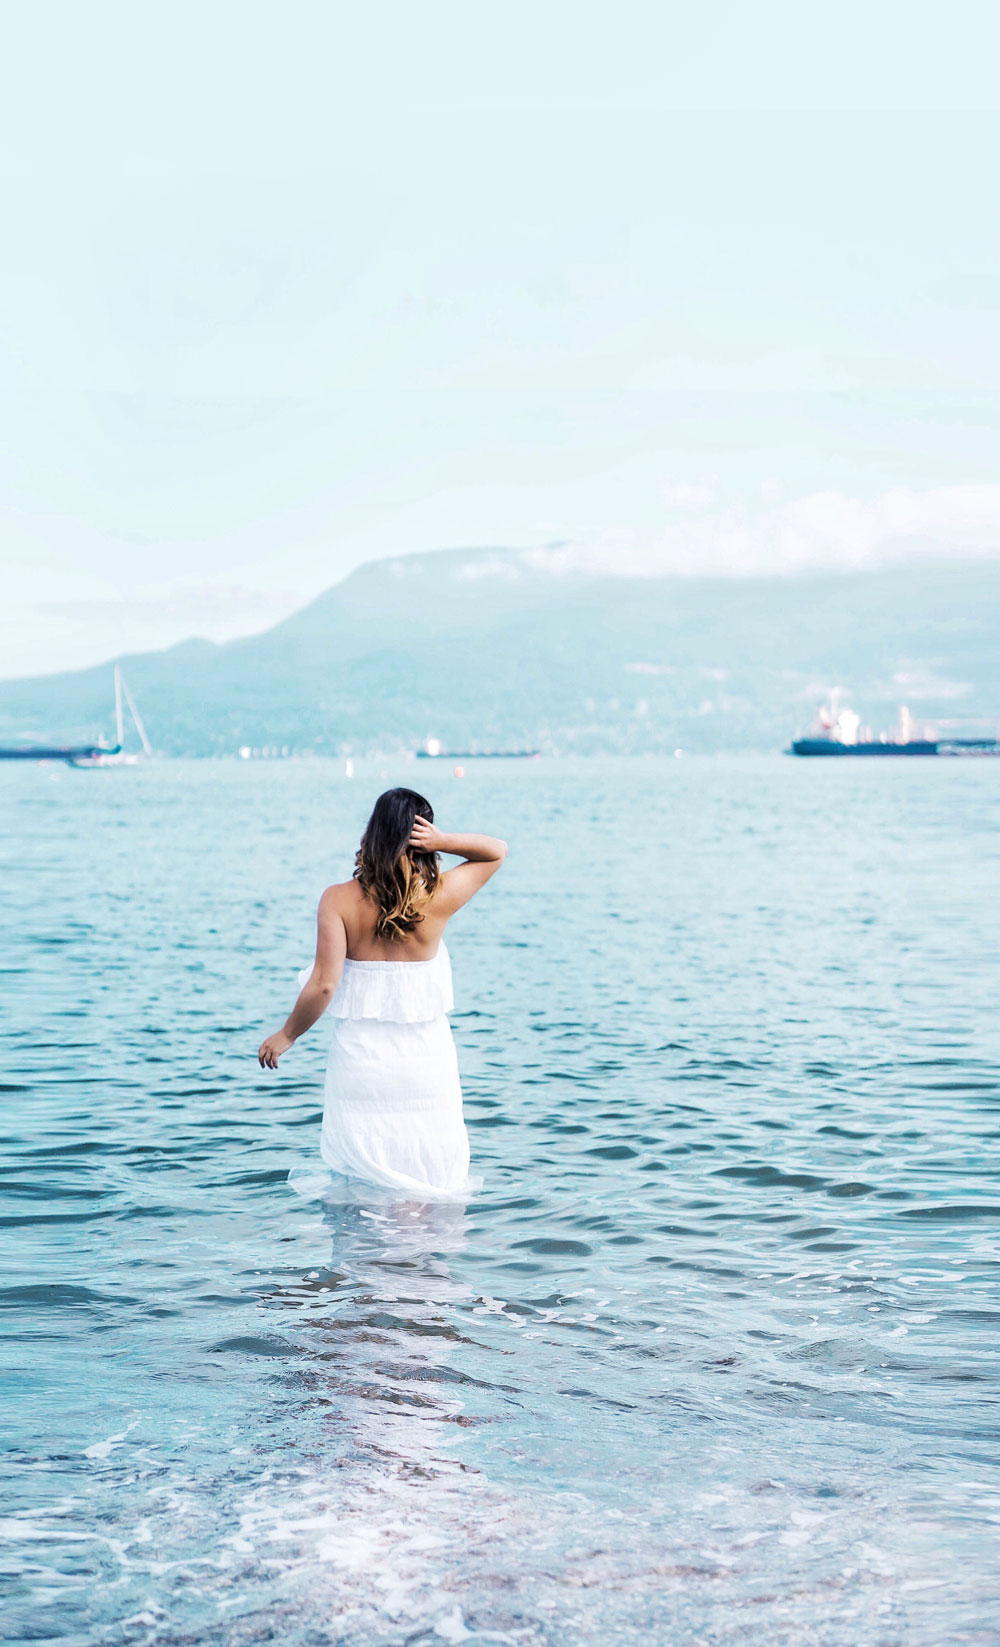 Summer dress style in Michael kors white dress by To Vogue or Bust